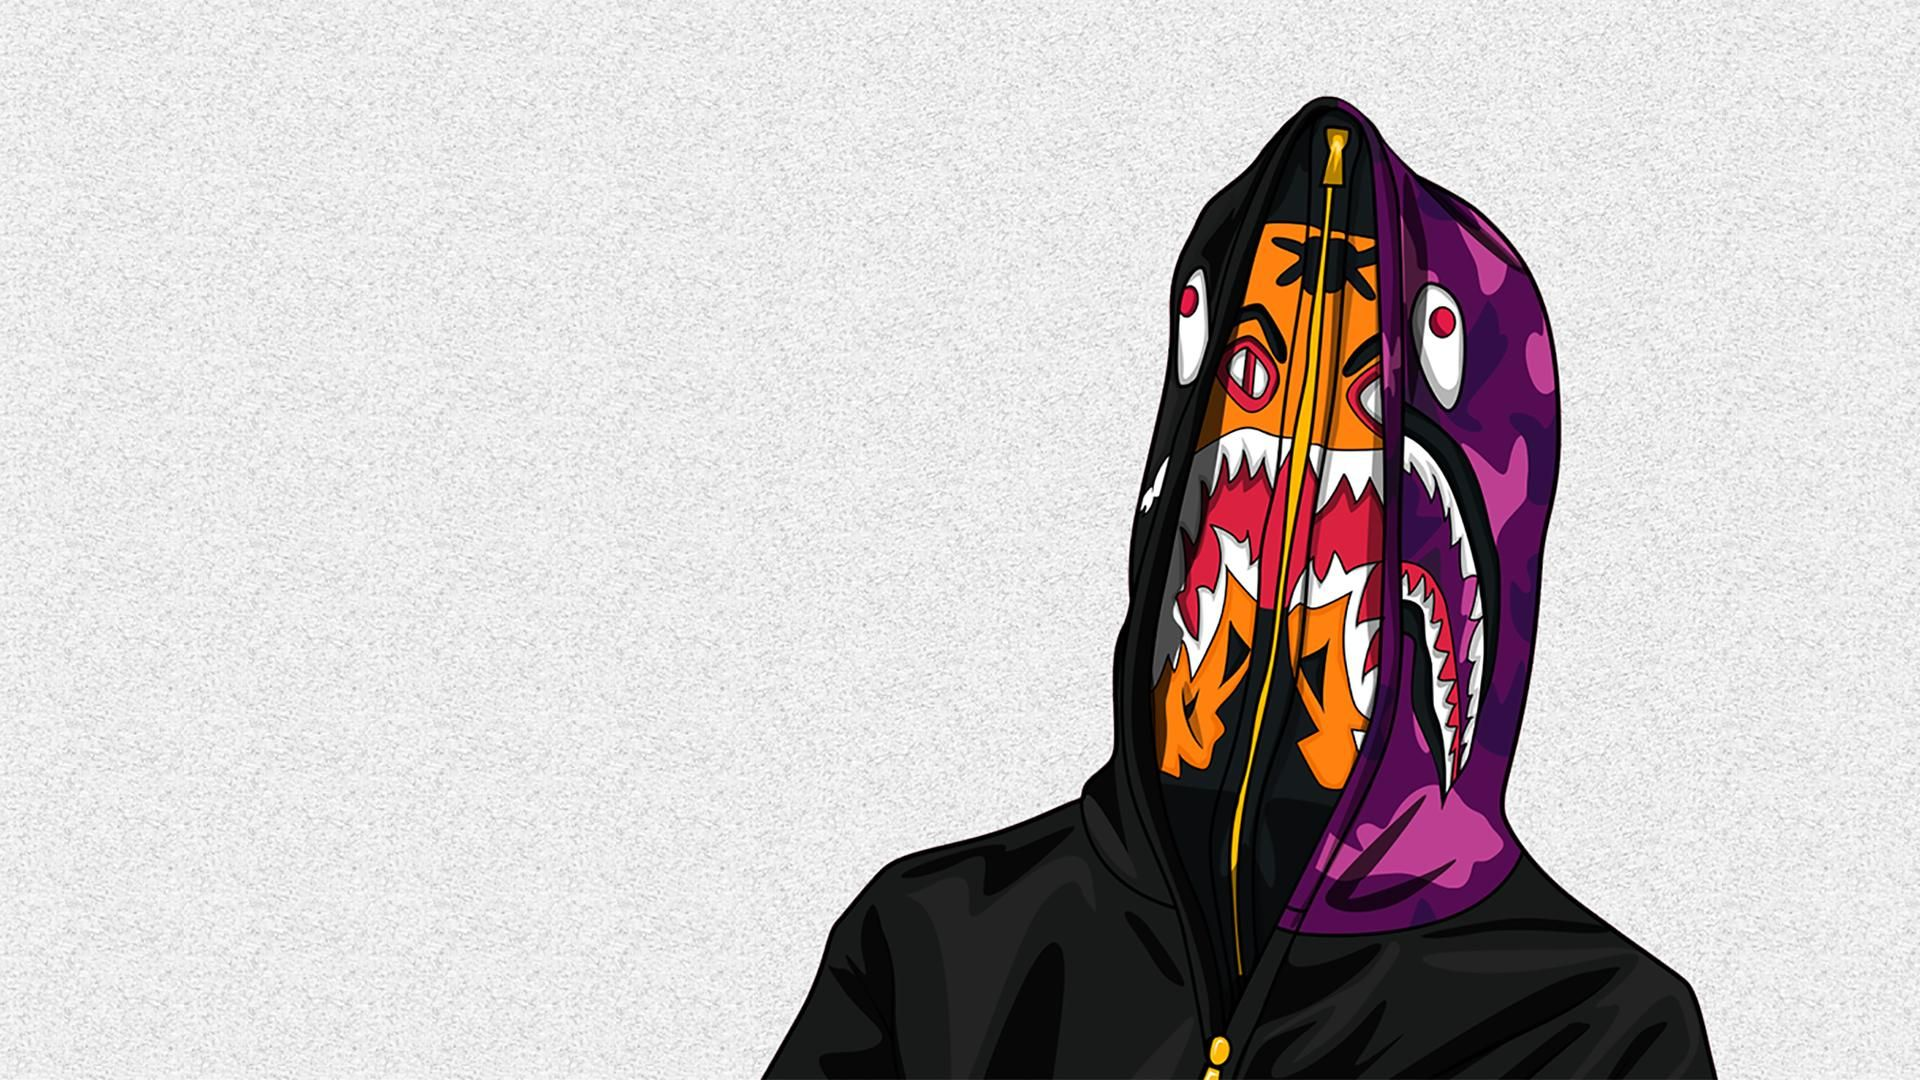 bape wallpaper 1920x1080